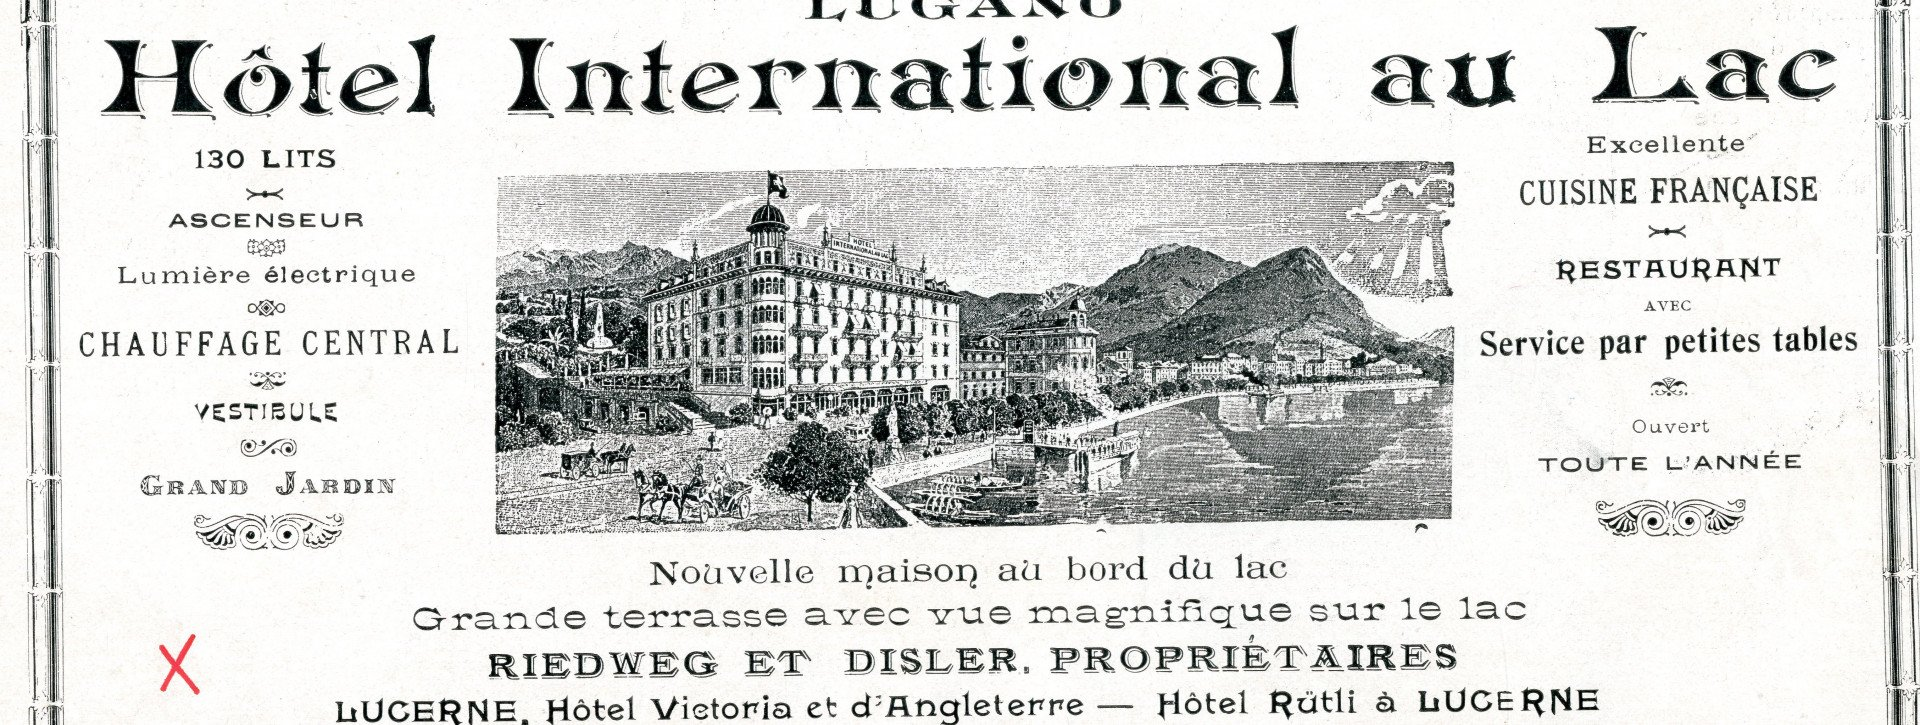 Old newspaper article of the International au Lac Historic Lakeside Hotel